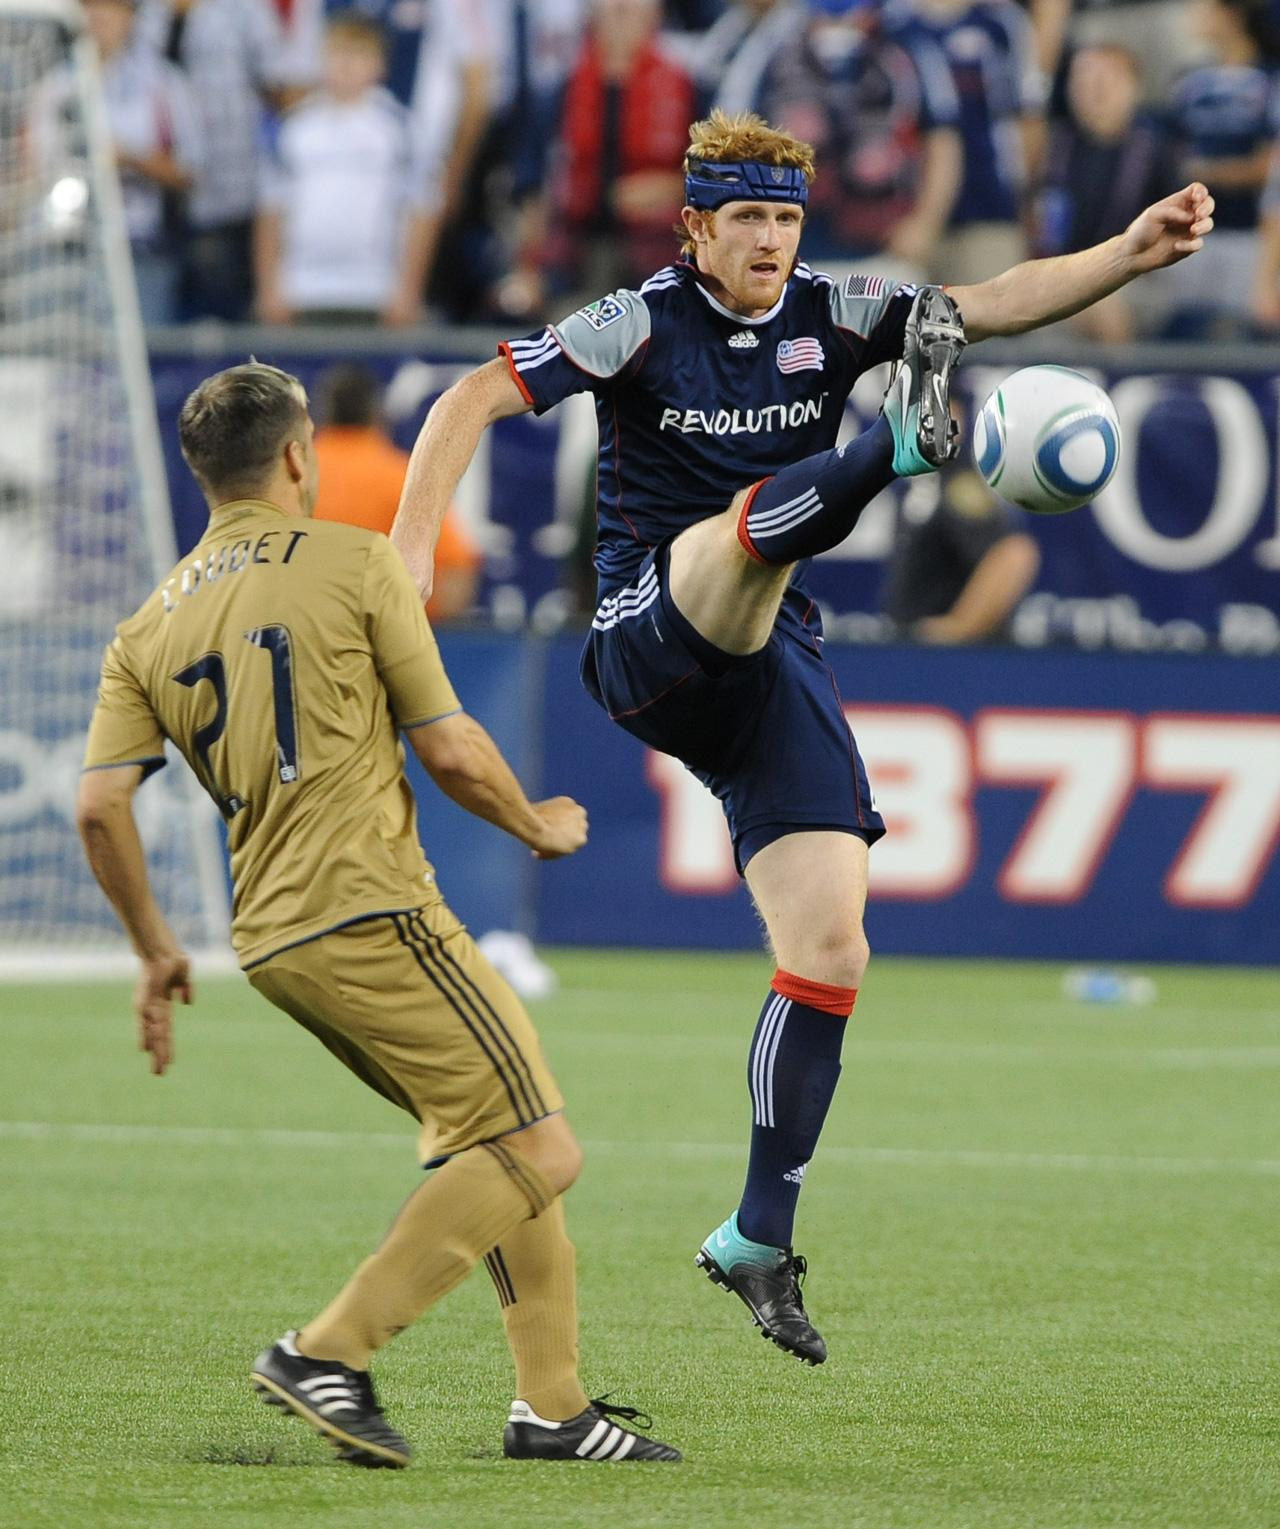 Pat Phelan vs. Philadelphia Union